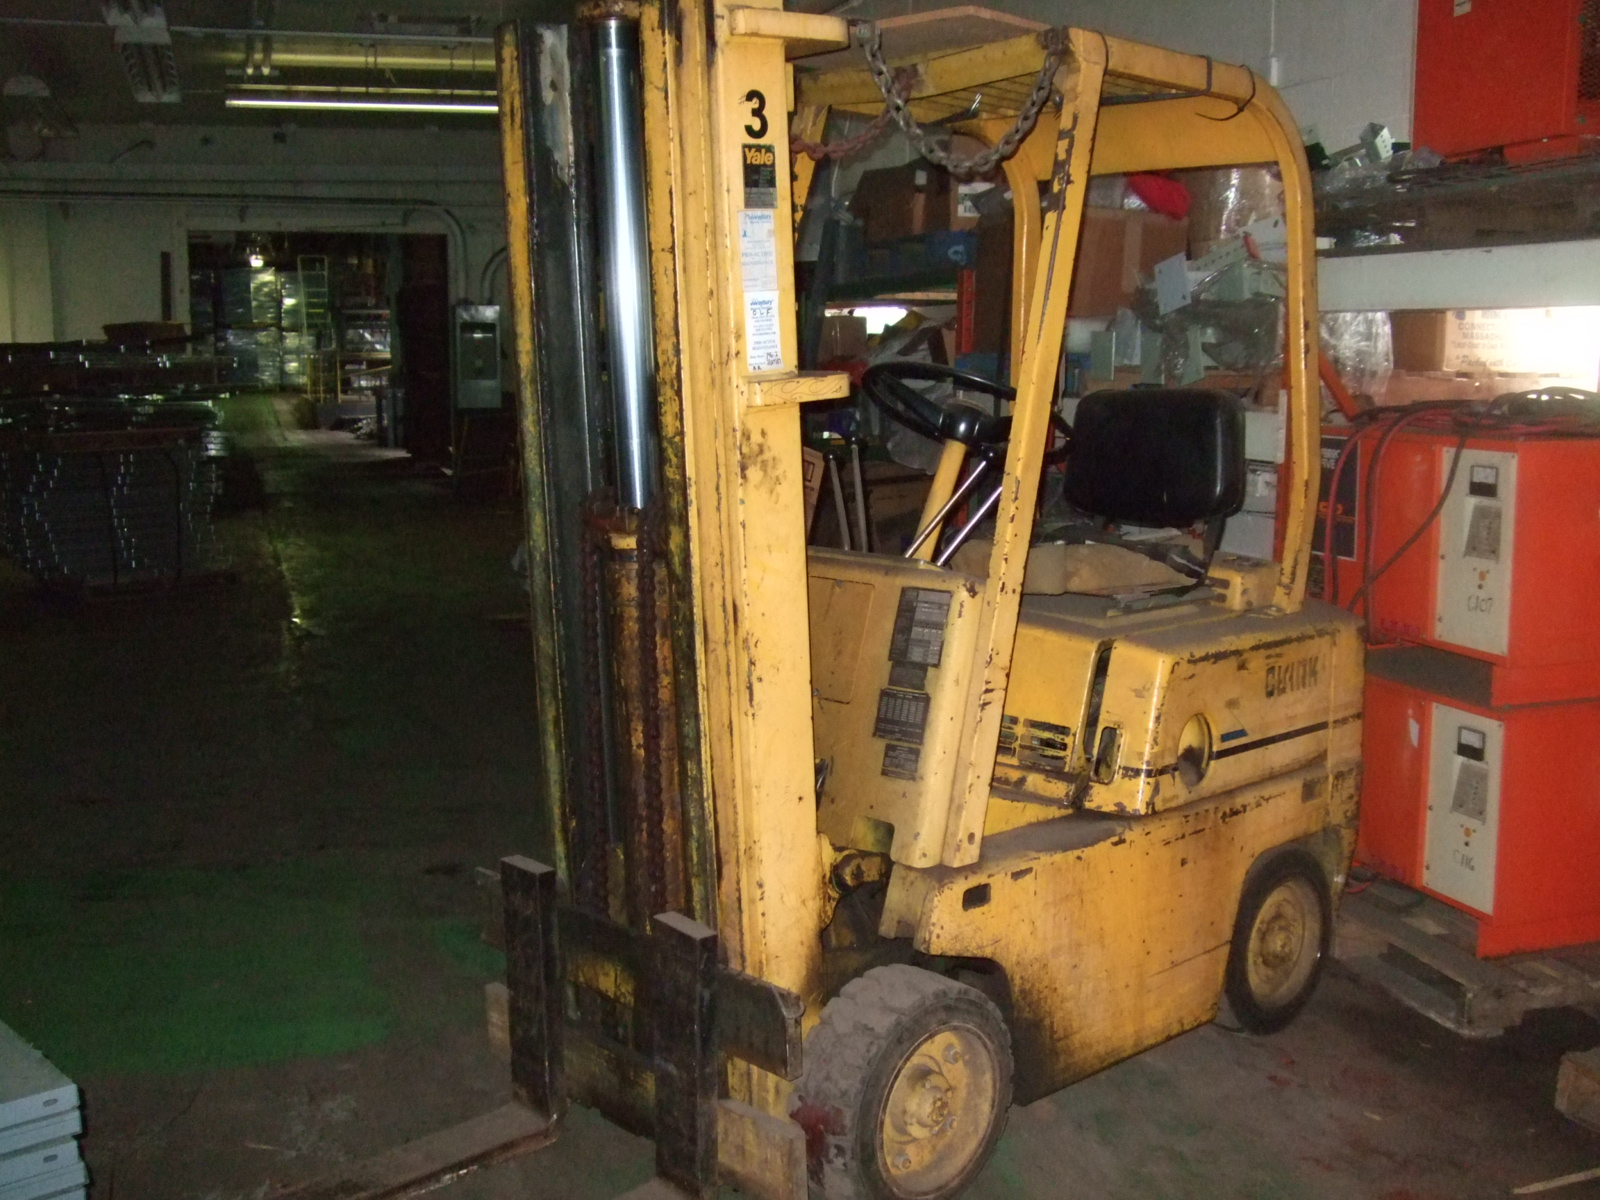 New Used Forklifts Orderpickers Lifts Clark Forklift Wiring Yale Diagram Fork Lift